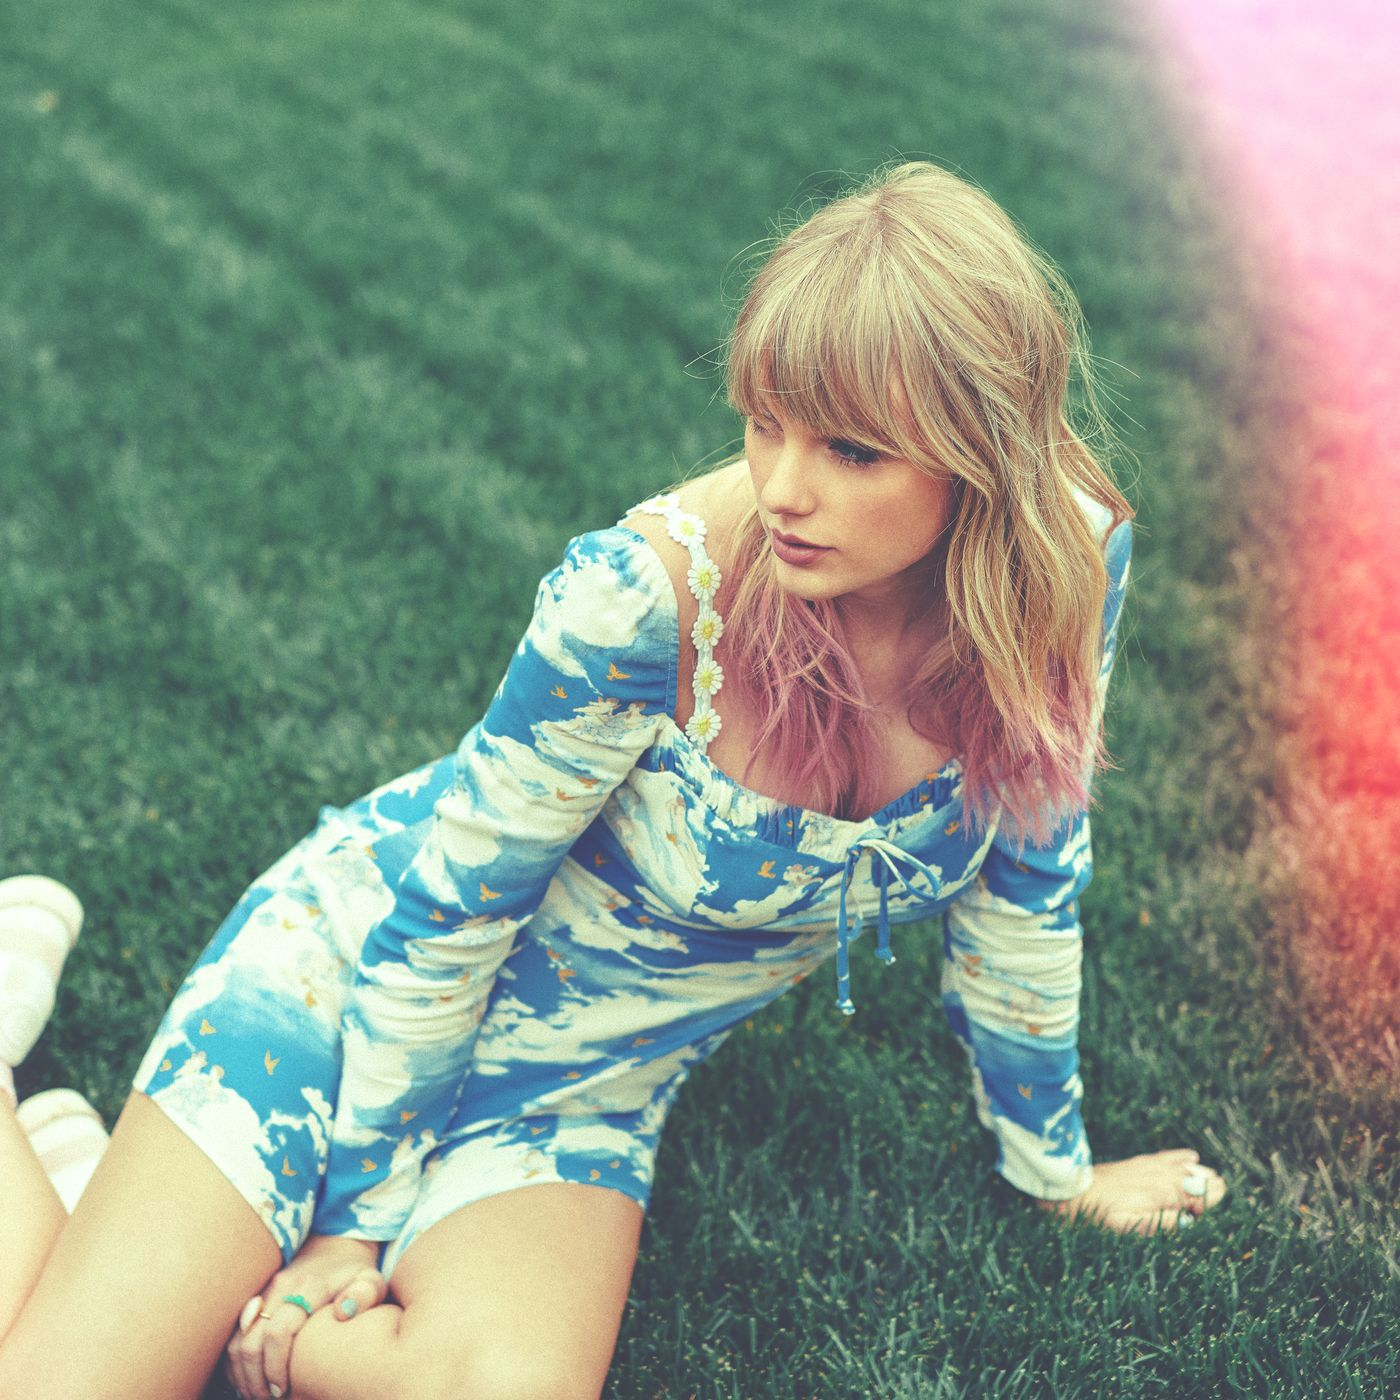 a8247c9c5af Taylor Swift s coundown ends with a new single